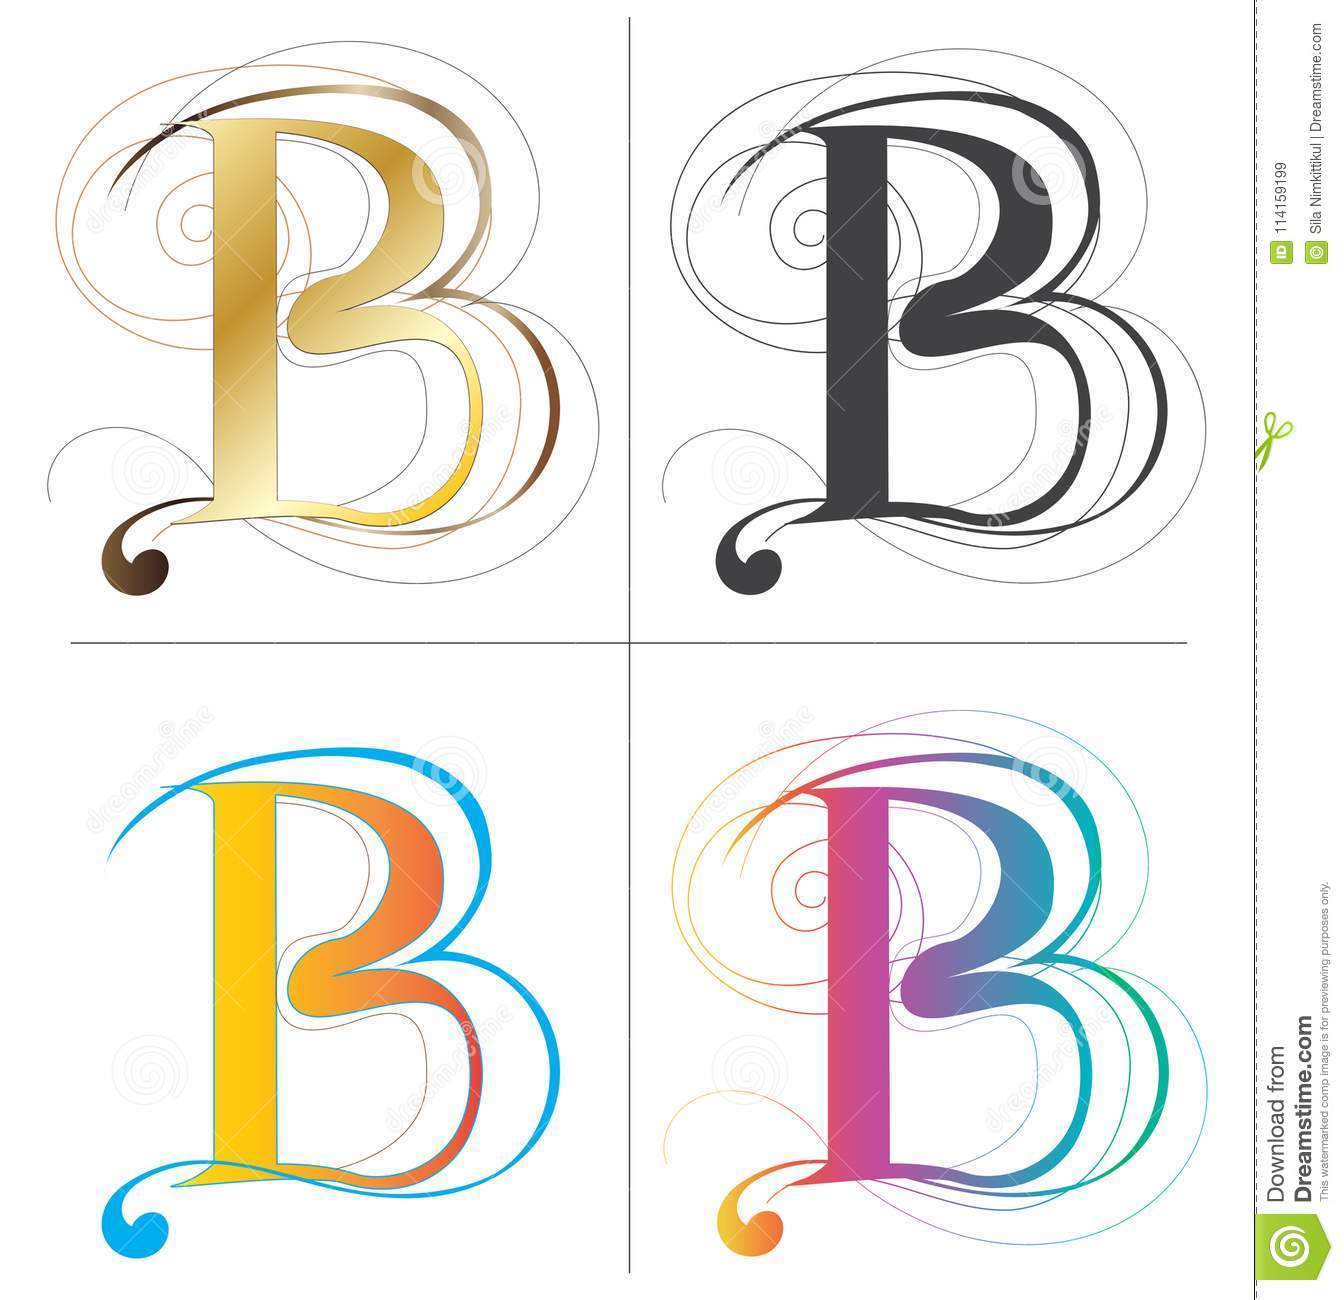 Letters B Alphabet Font Vector Design 4 Color Europe Style Isolate On White Has Clipping Paths